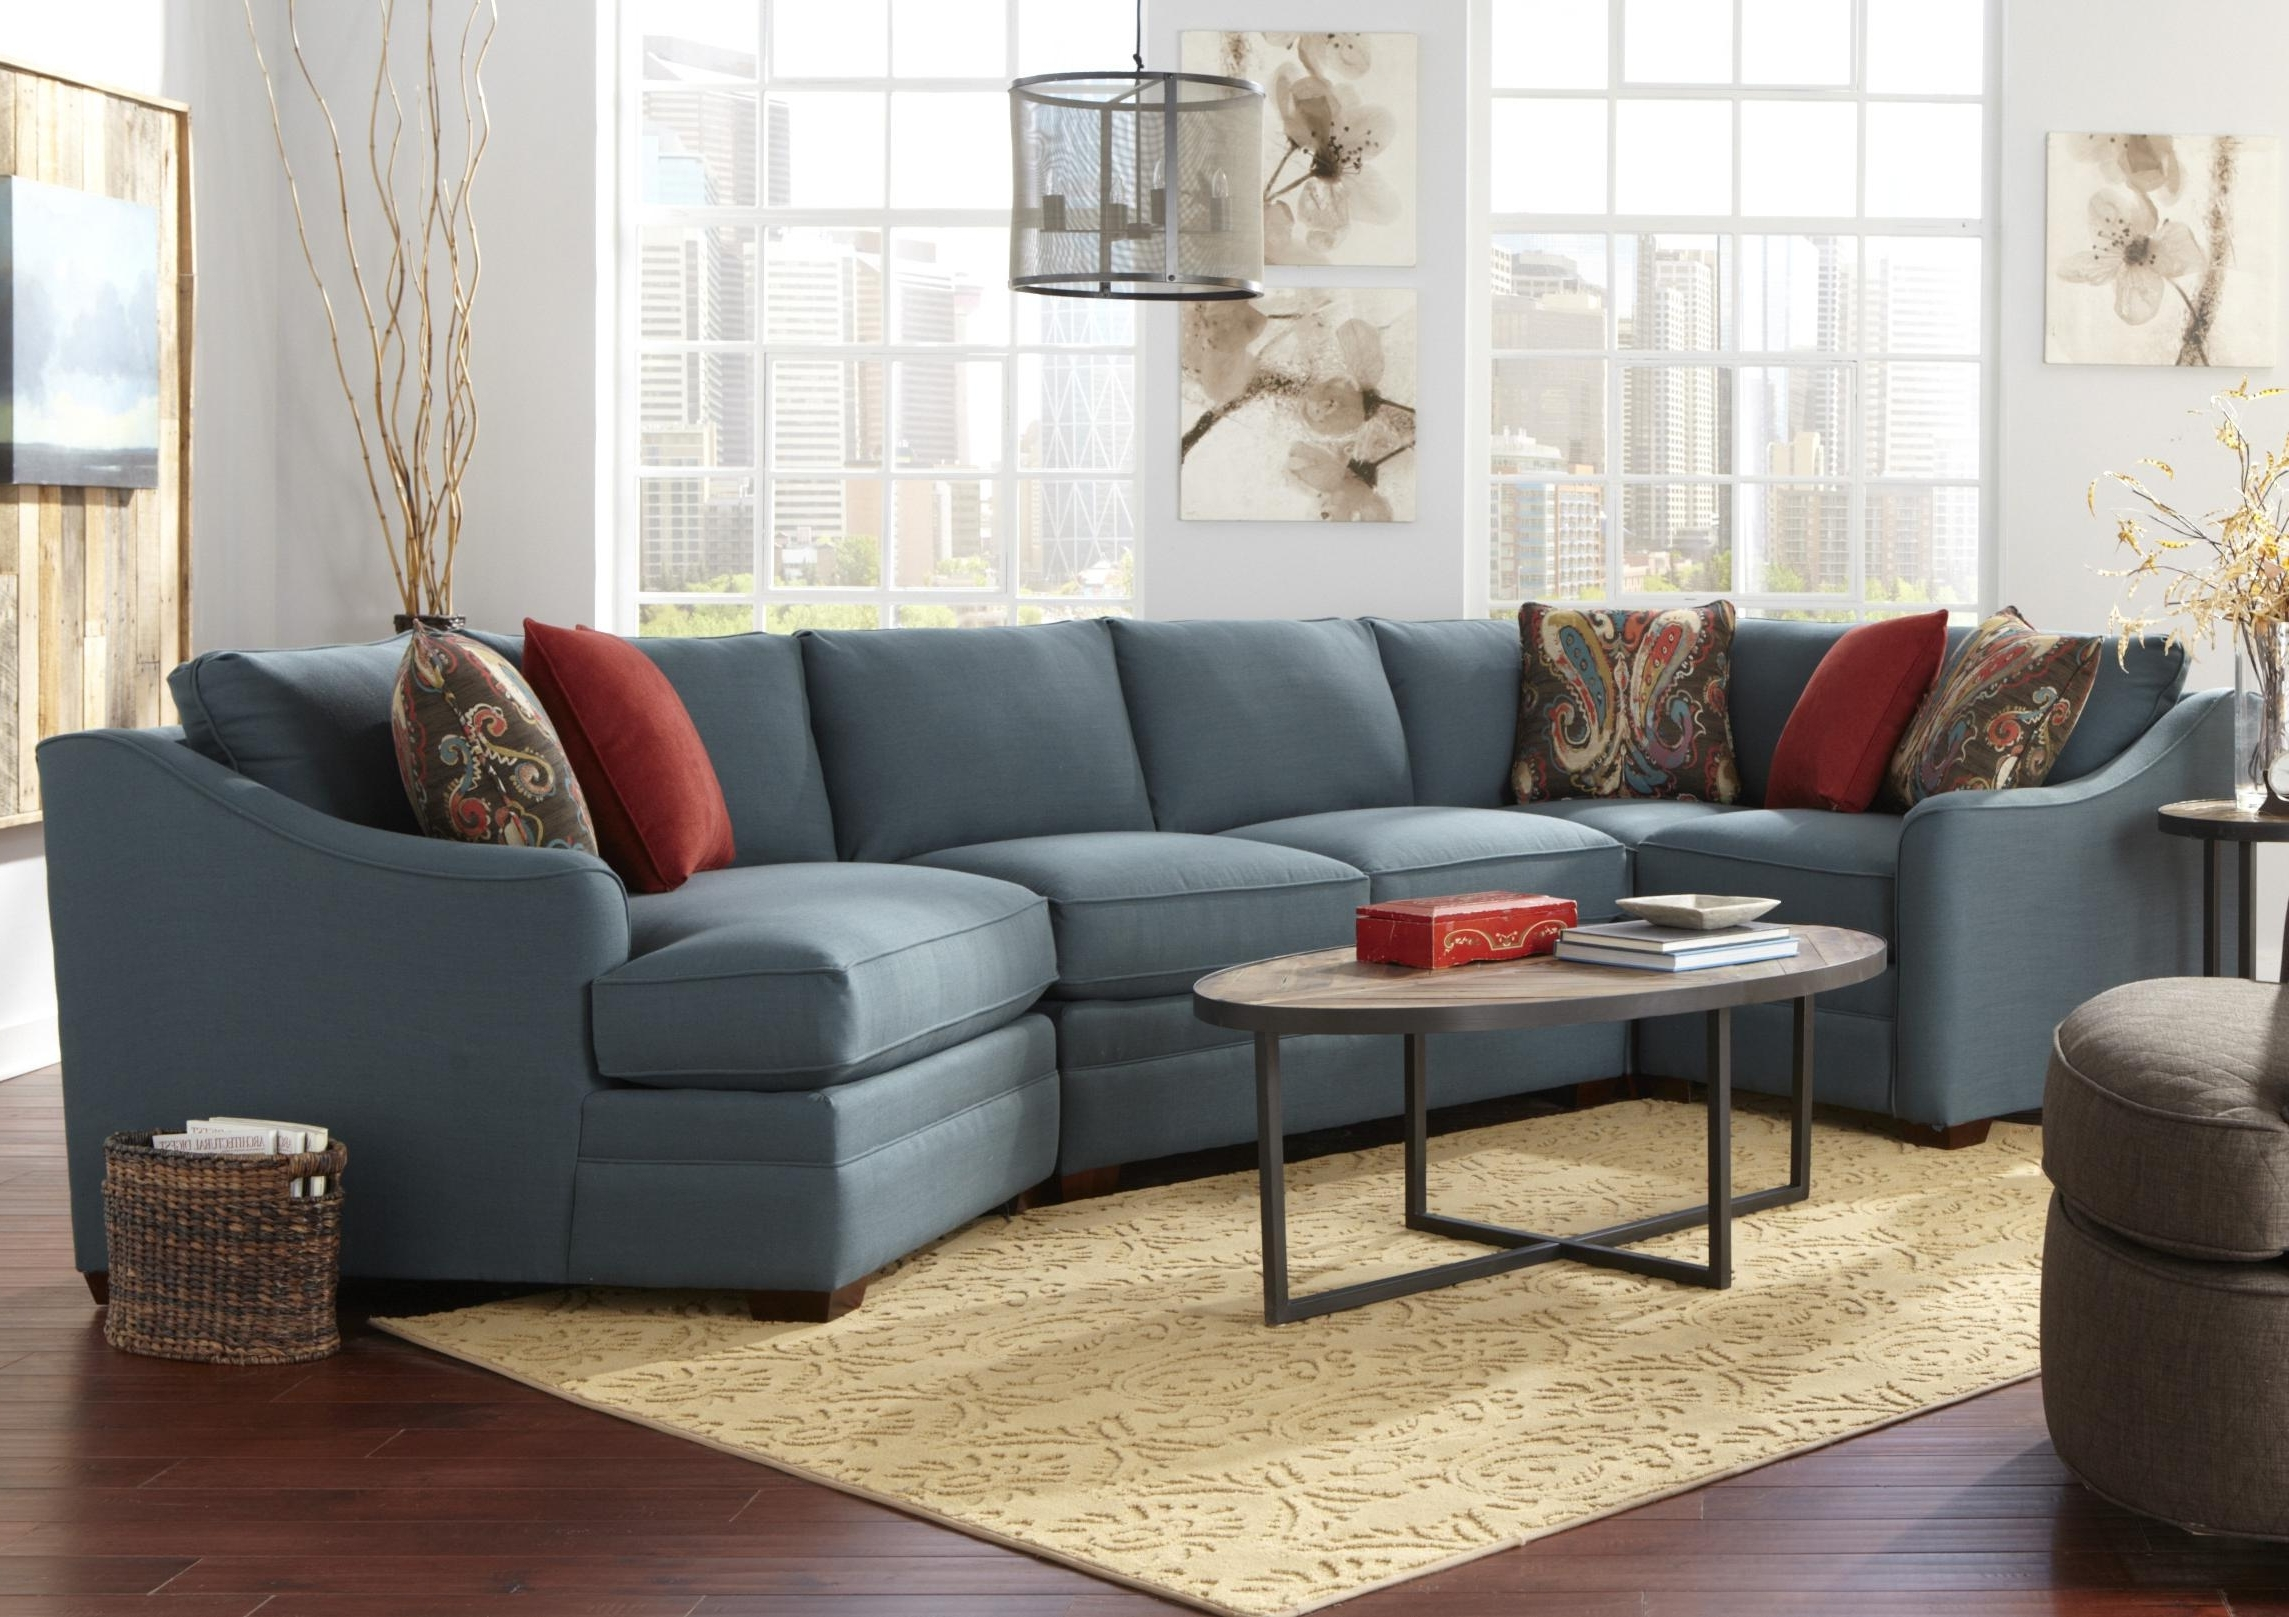 Pensacola Fl Sectional Sofas Inside Well Liked Craftmaster F9 Custom Collection Four Piece <b>customizable</b (View 8 of 20)